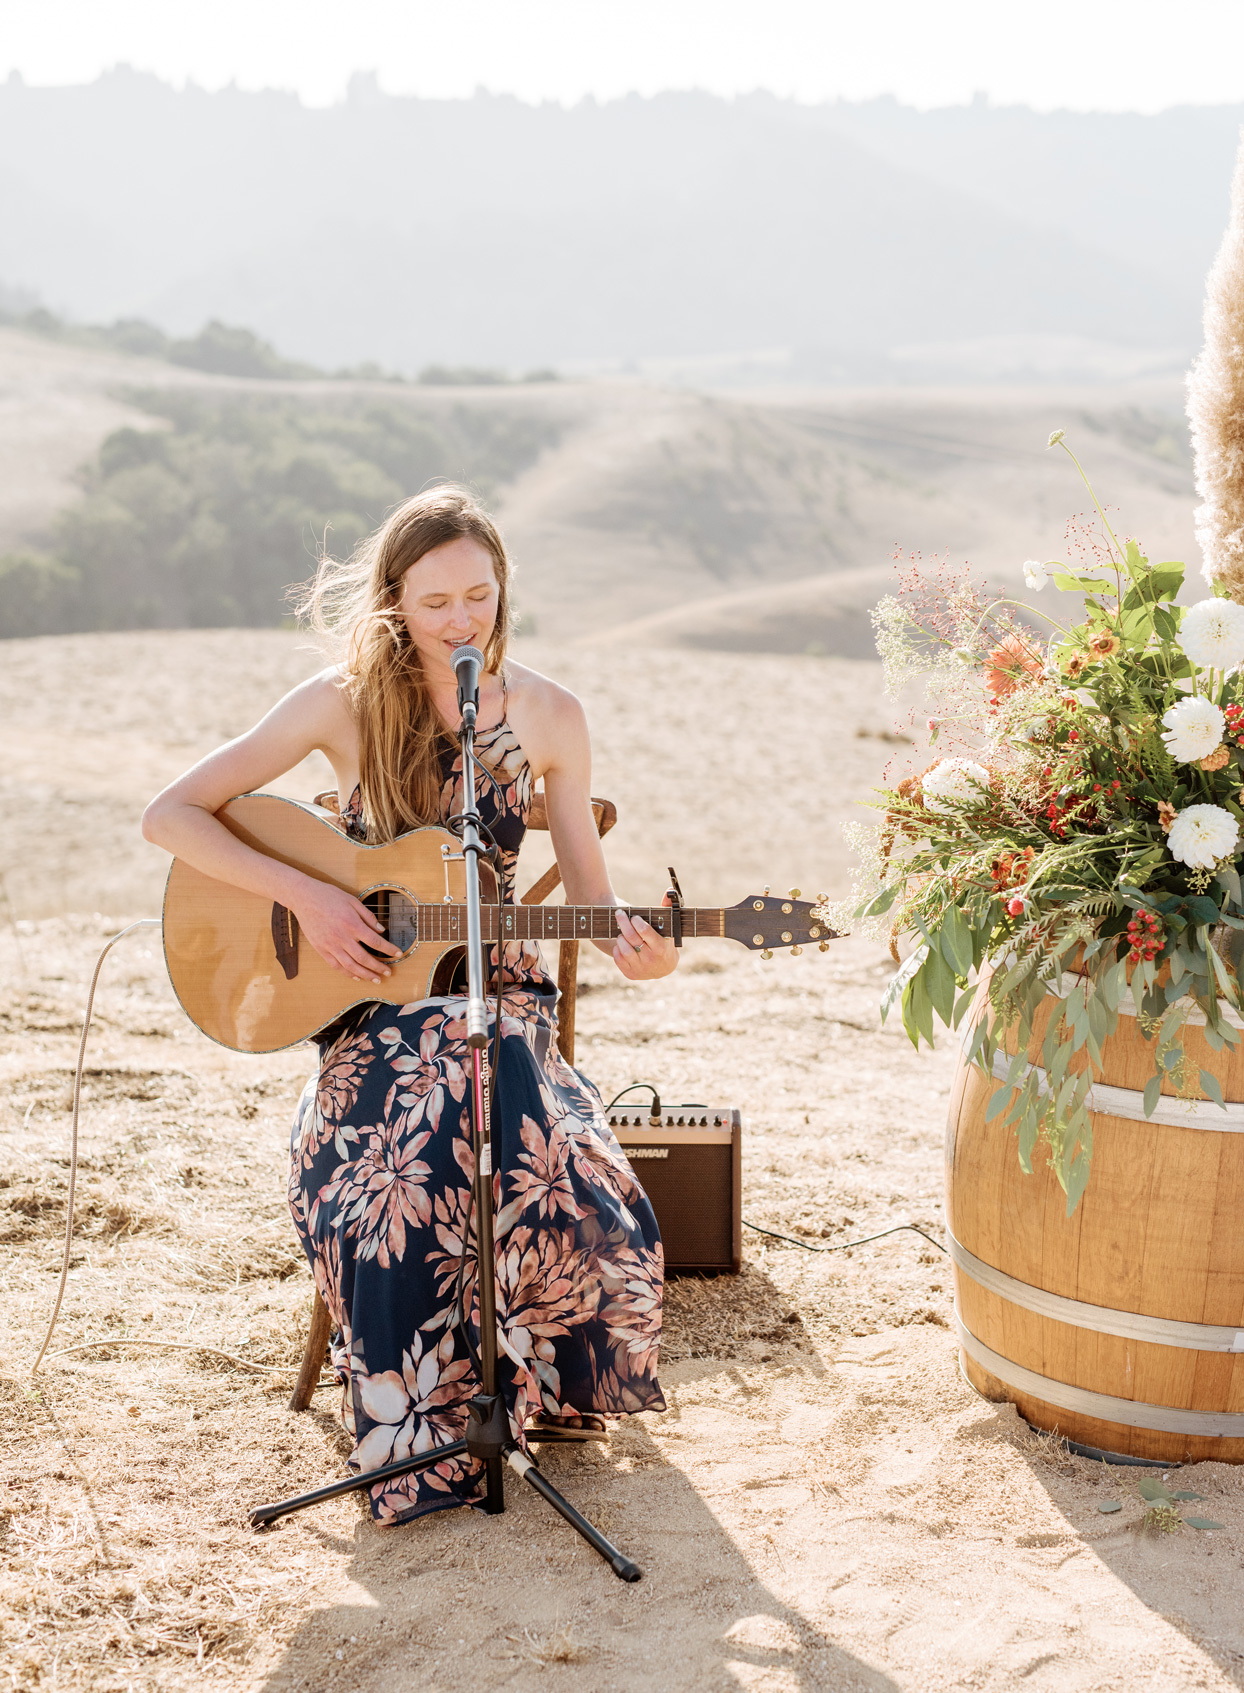 wedding singer with her guitar and microphone